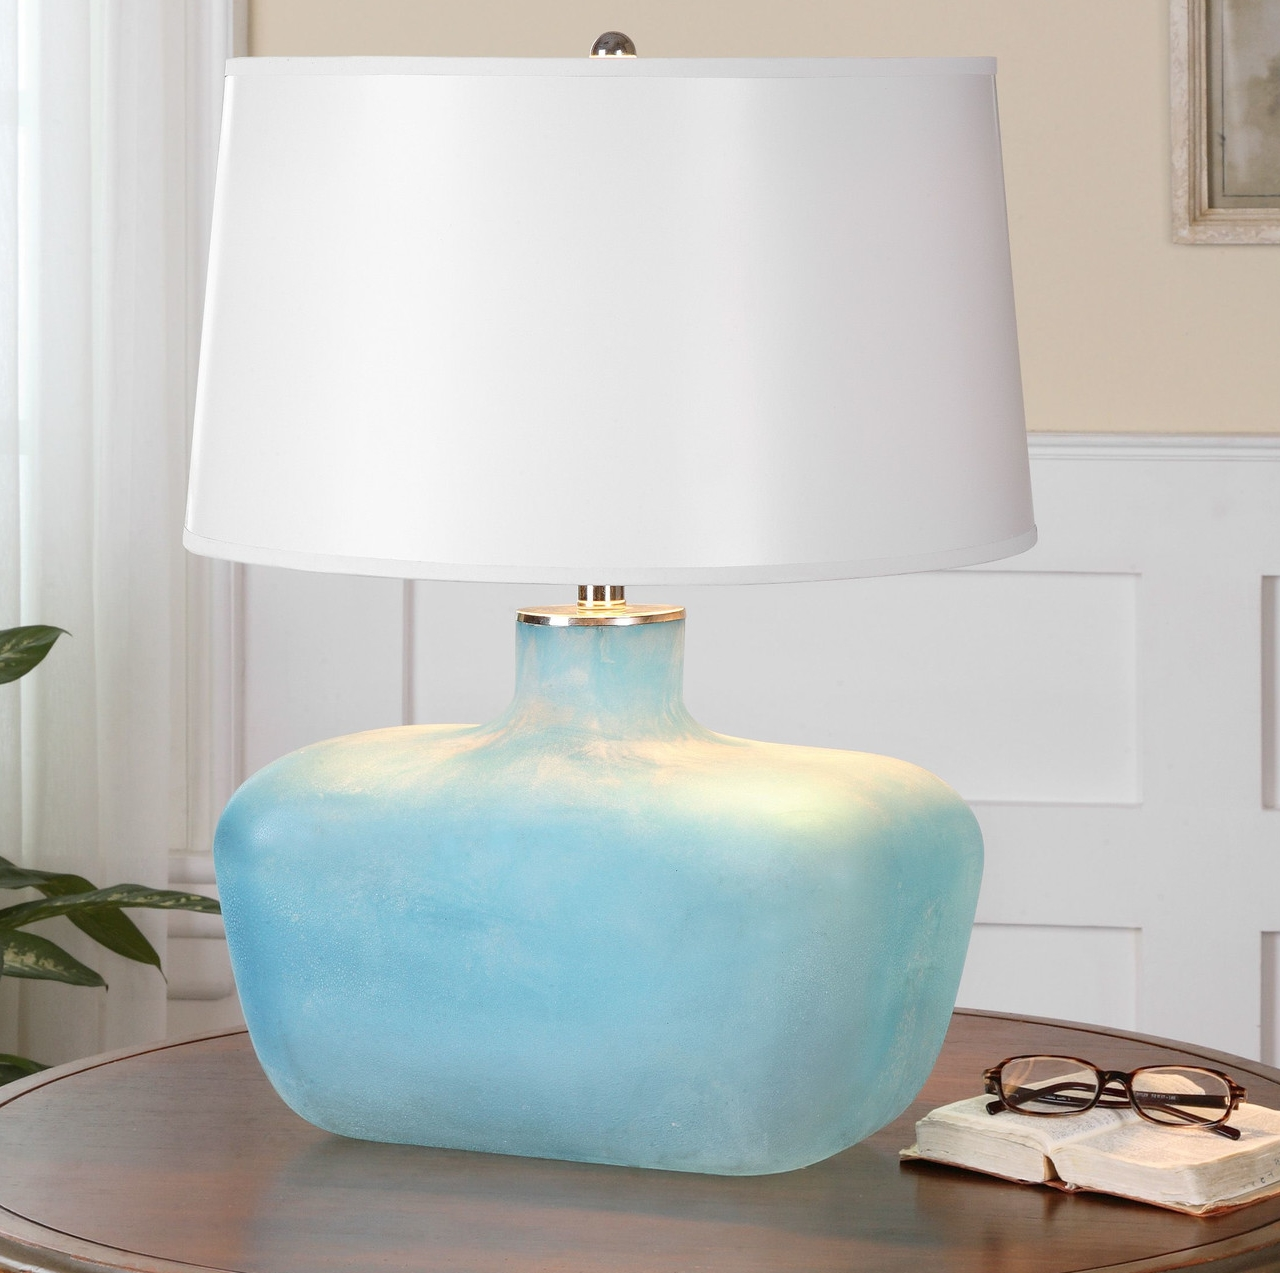 Taline+Table+Lamp+in+Ivory+Glass+with+Aluminum+Accents.jpg